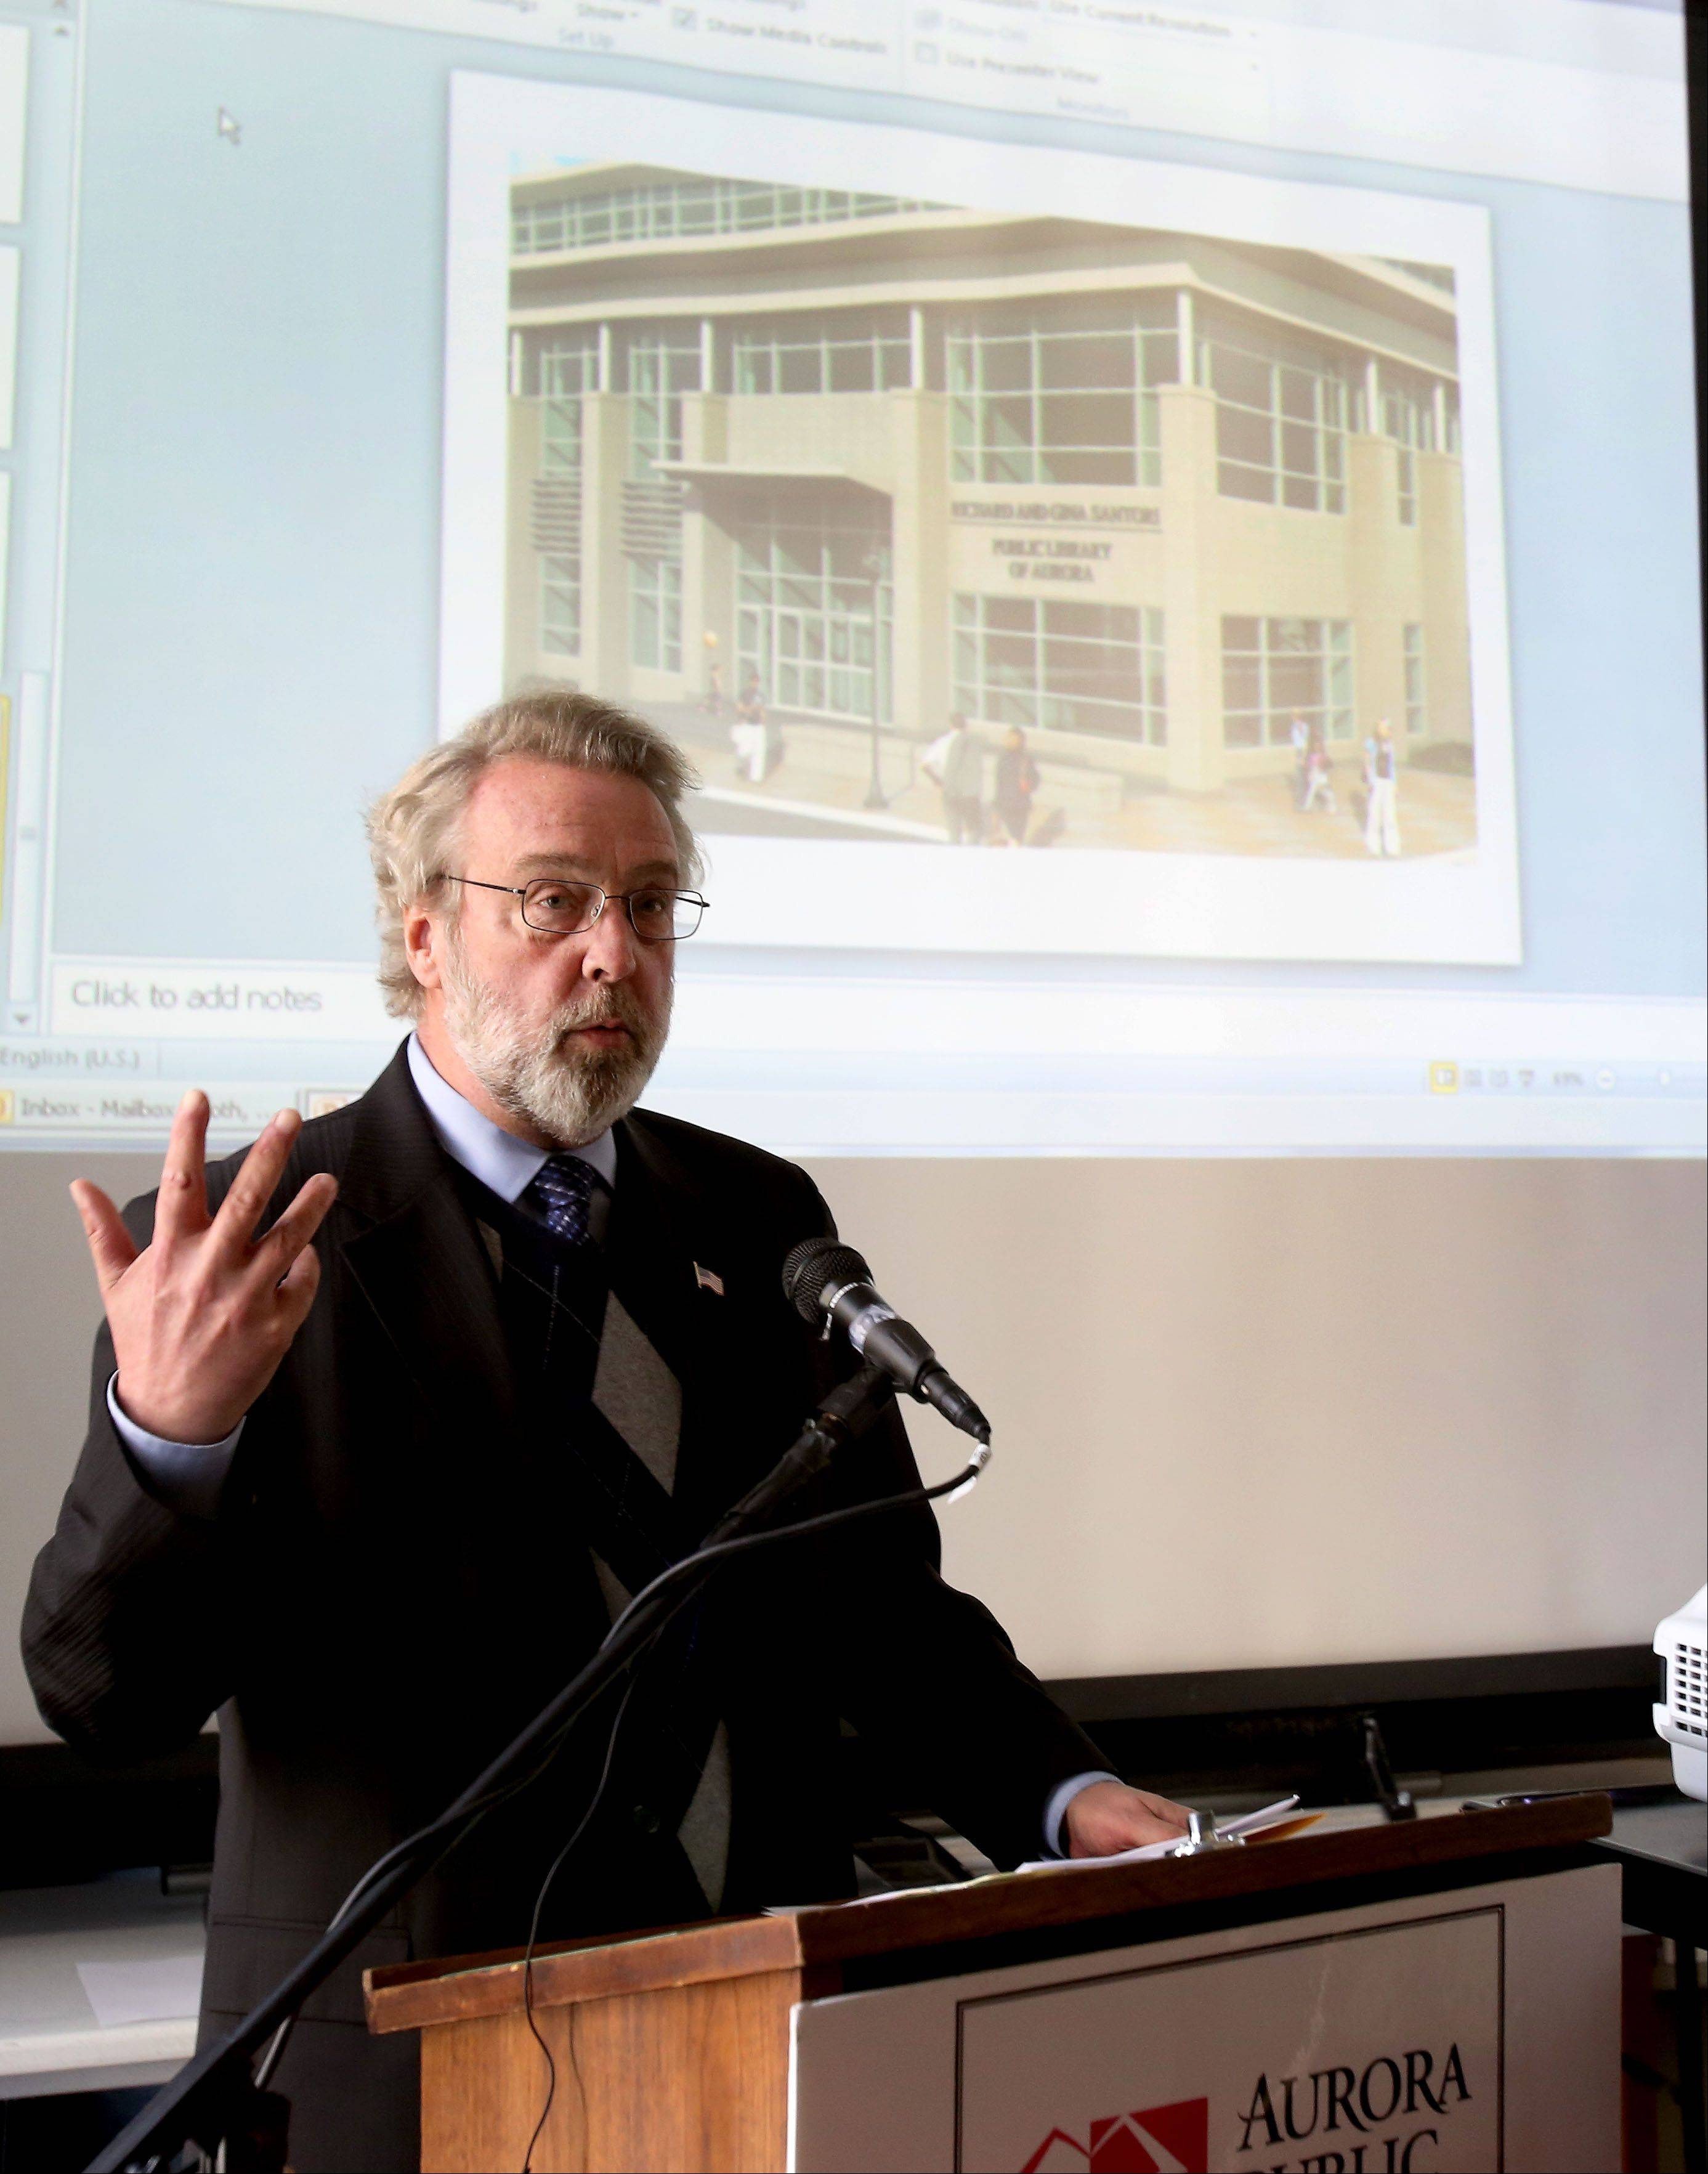 Aurora Mayor Tom Weisner speaks about the $3 million donation from the Richard and Gina Santori Charitable Foundation to the Aurora Public Library Foundation.